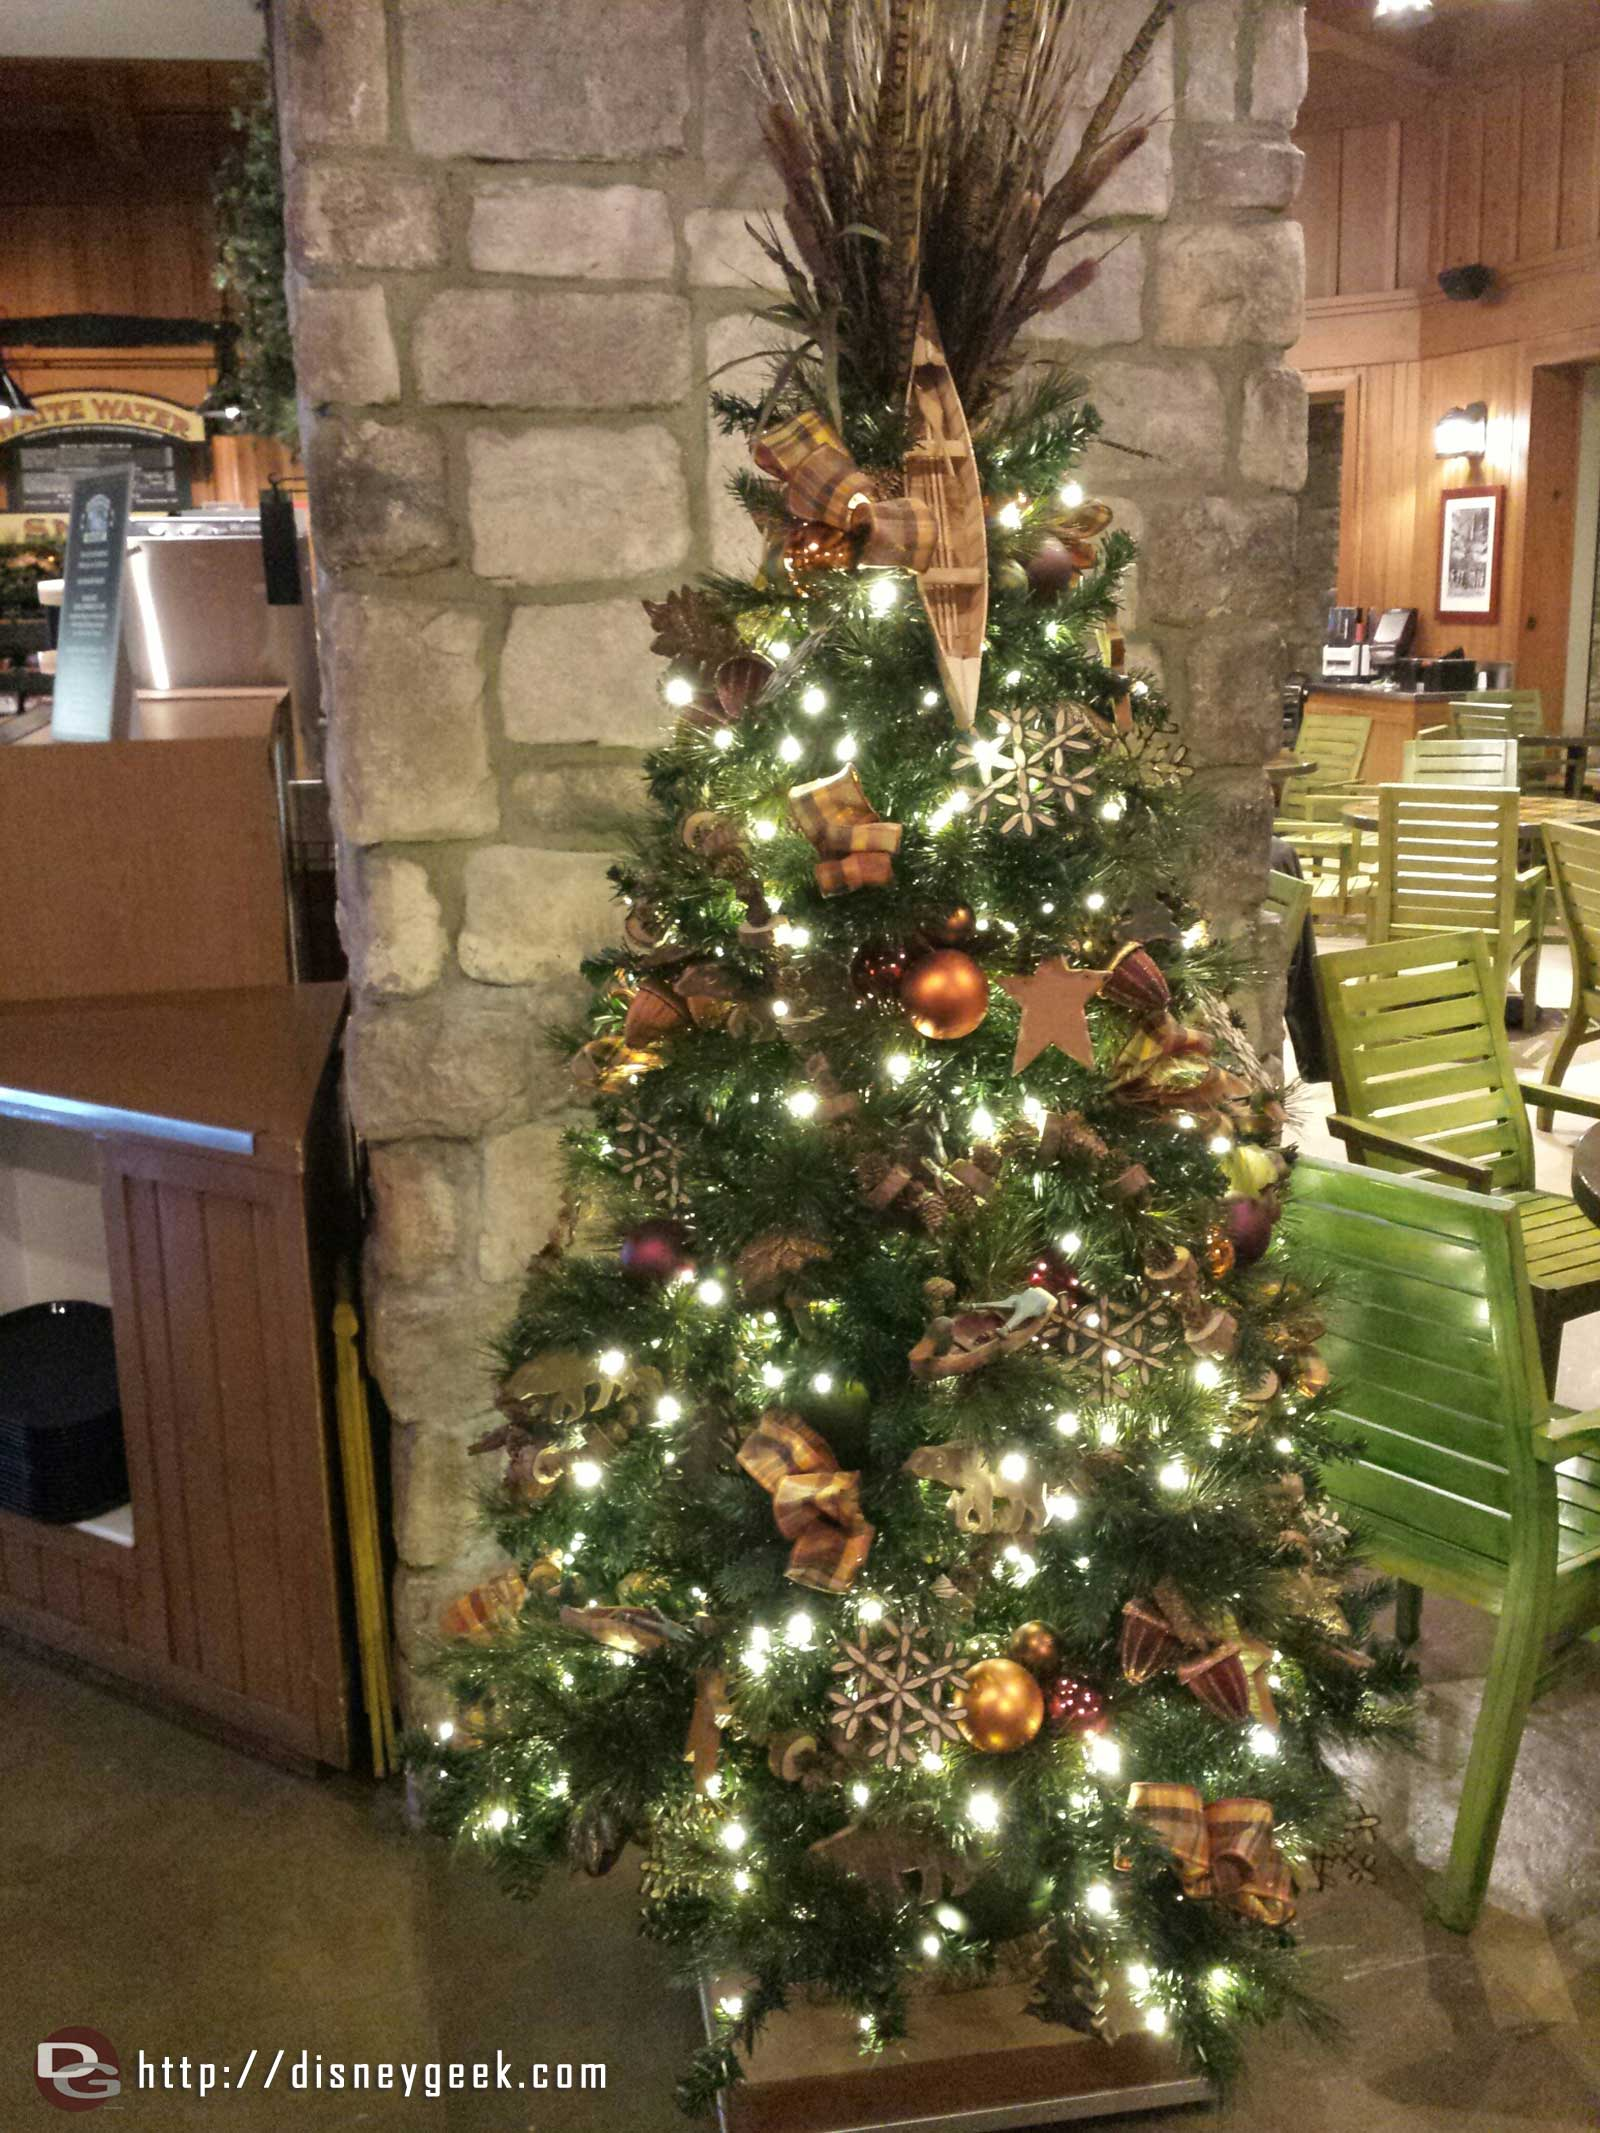 The Christmas tree in White Water Snacks at the Grand Californian